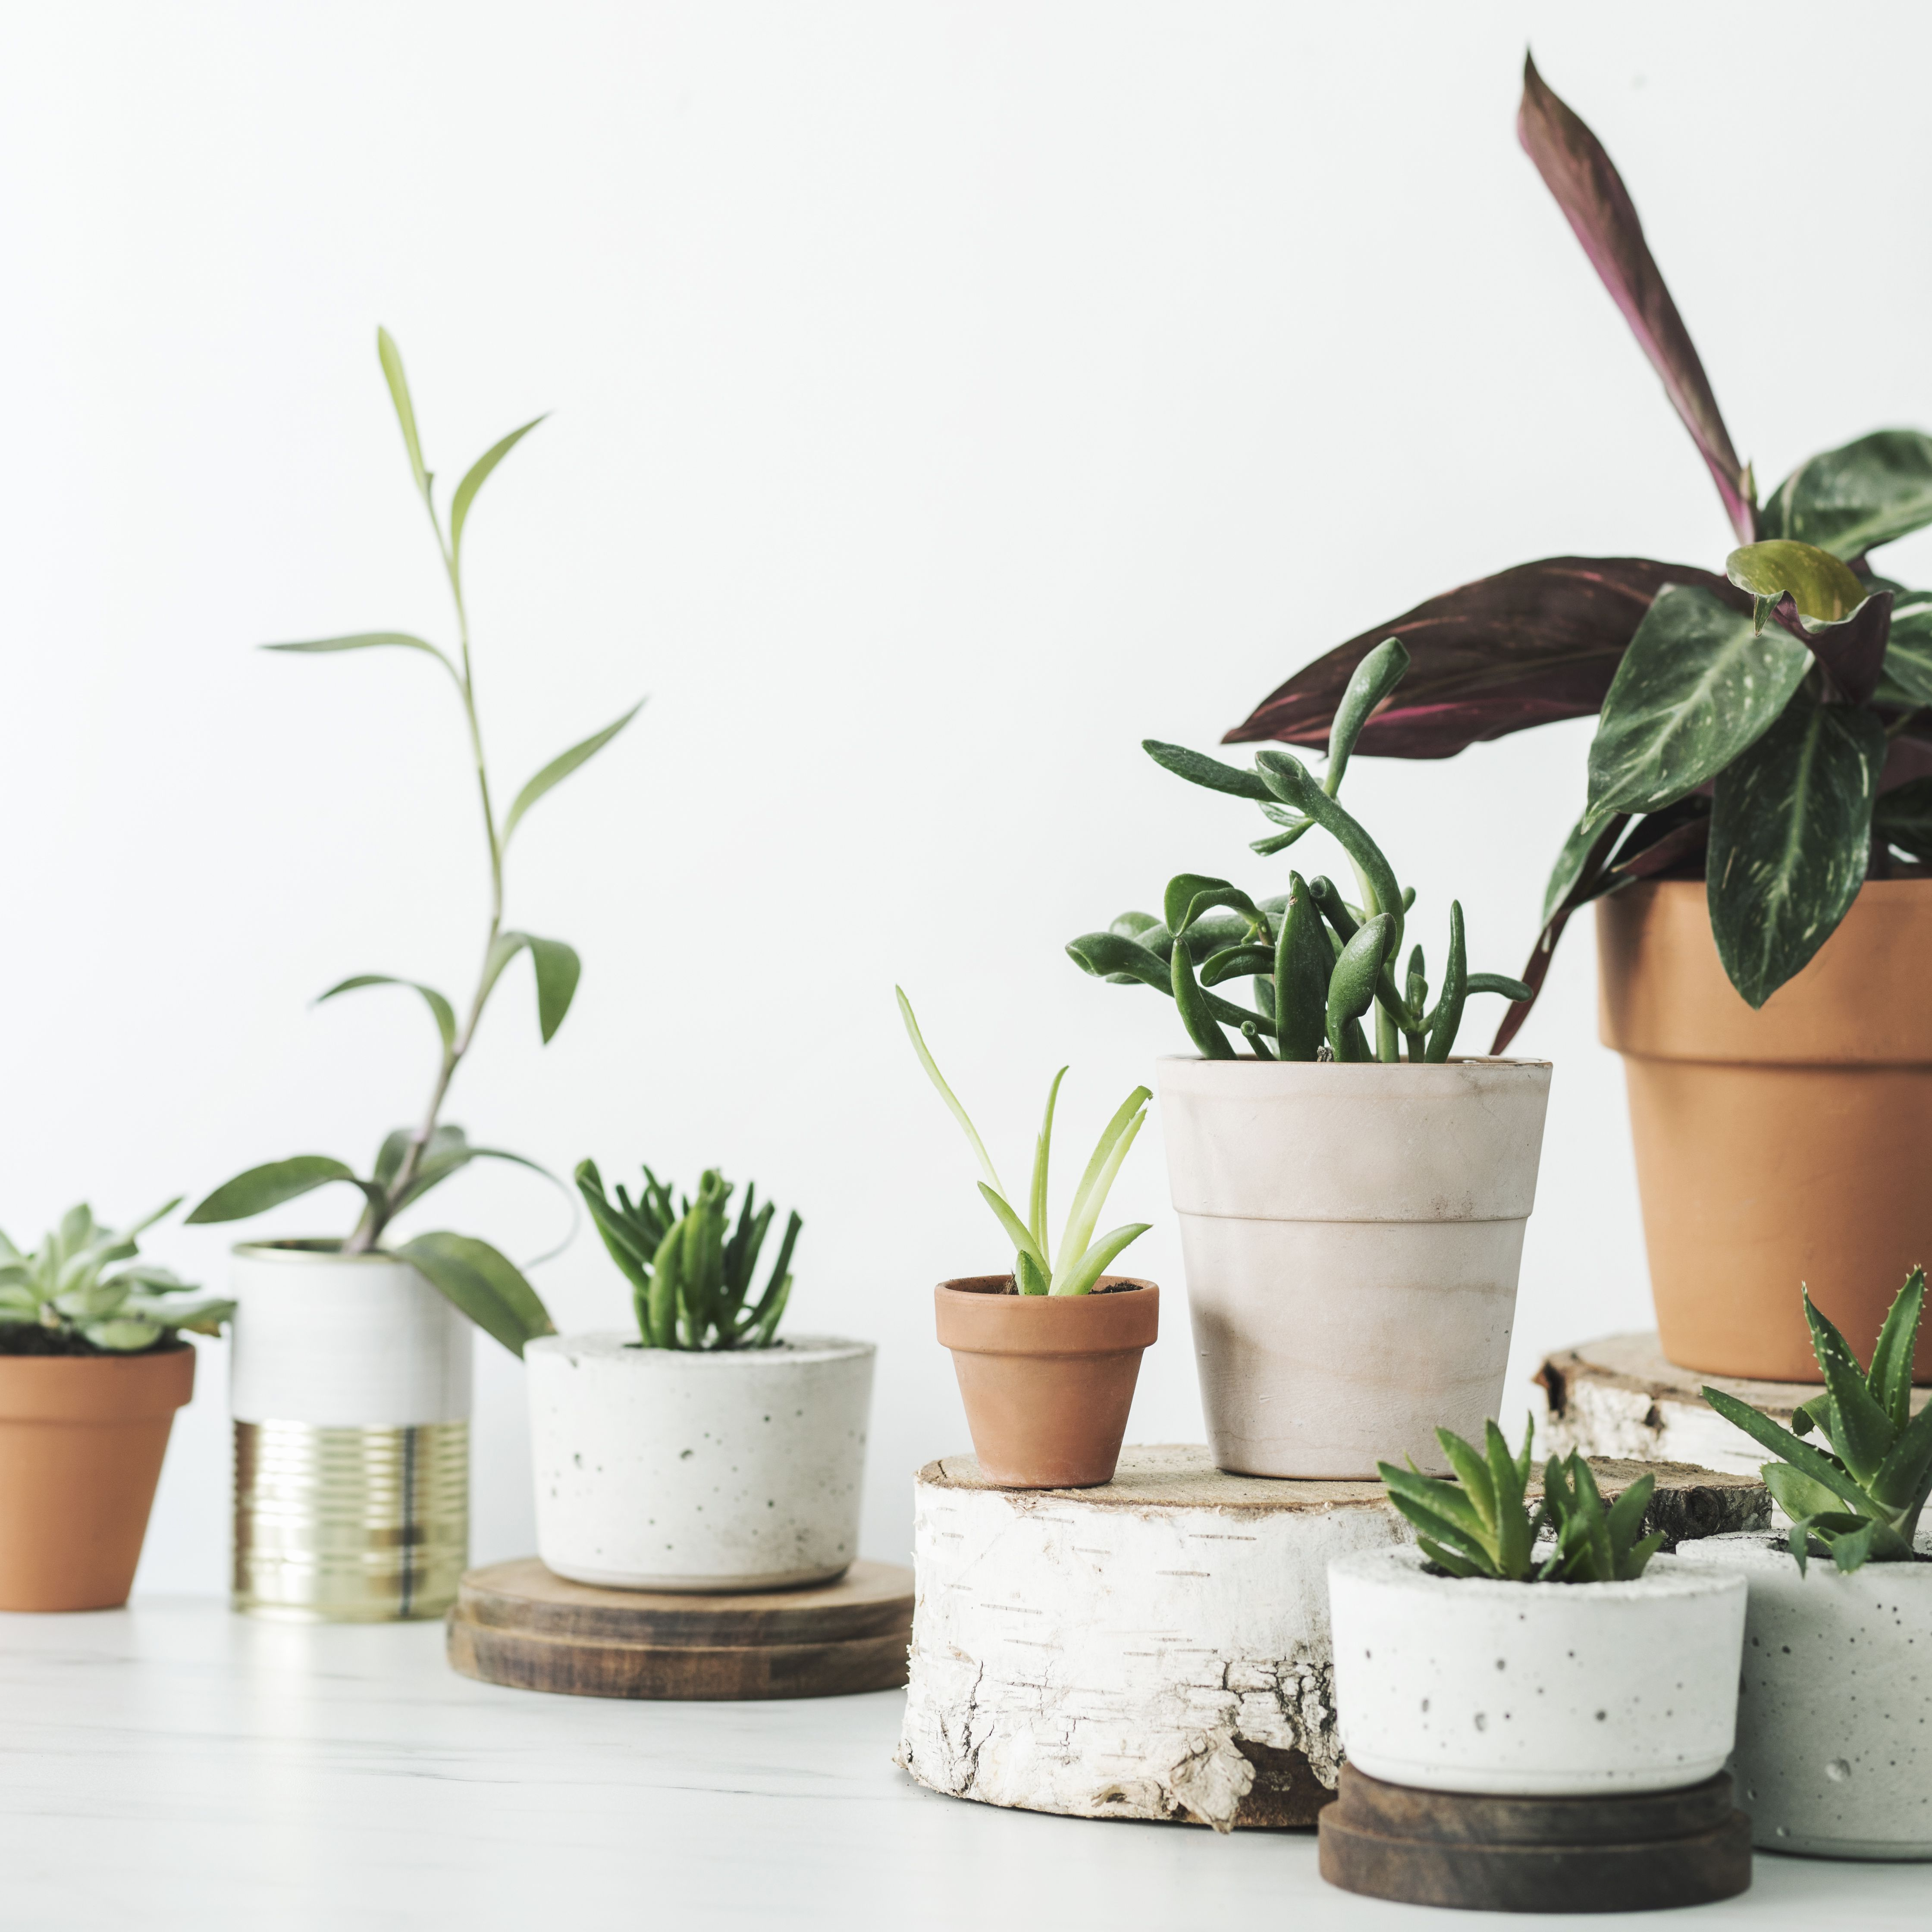 The 7 Best Places To Buy Plants Online